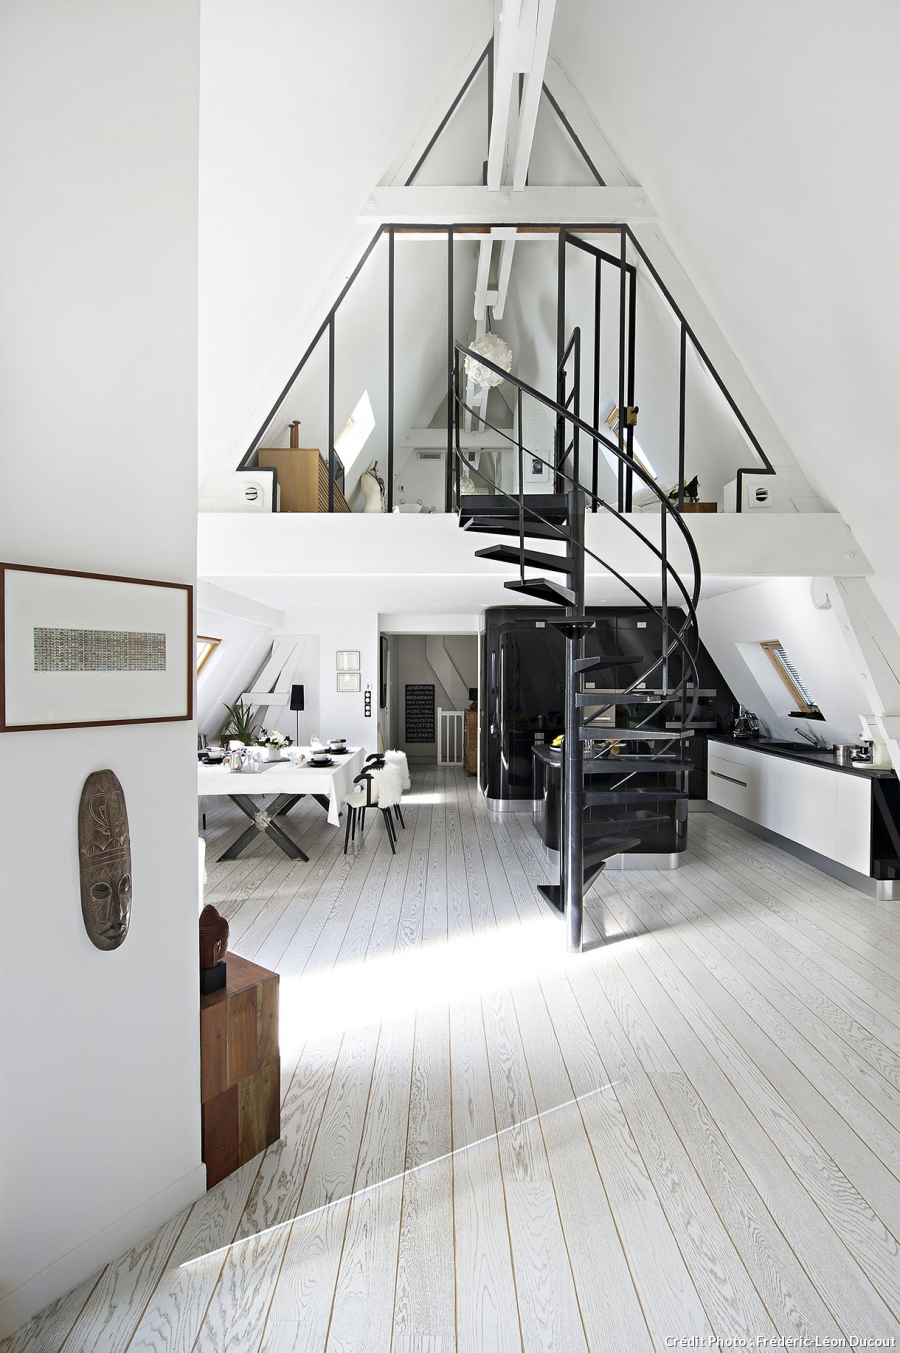 This attic apartment was divided into two floors sepaarting the public and private area